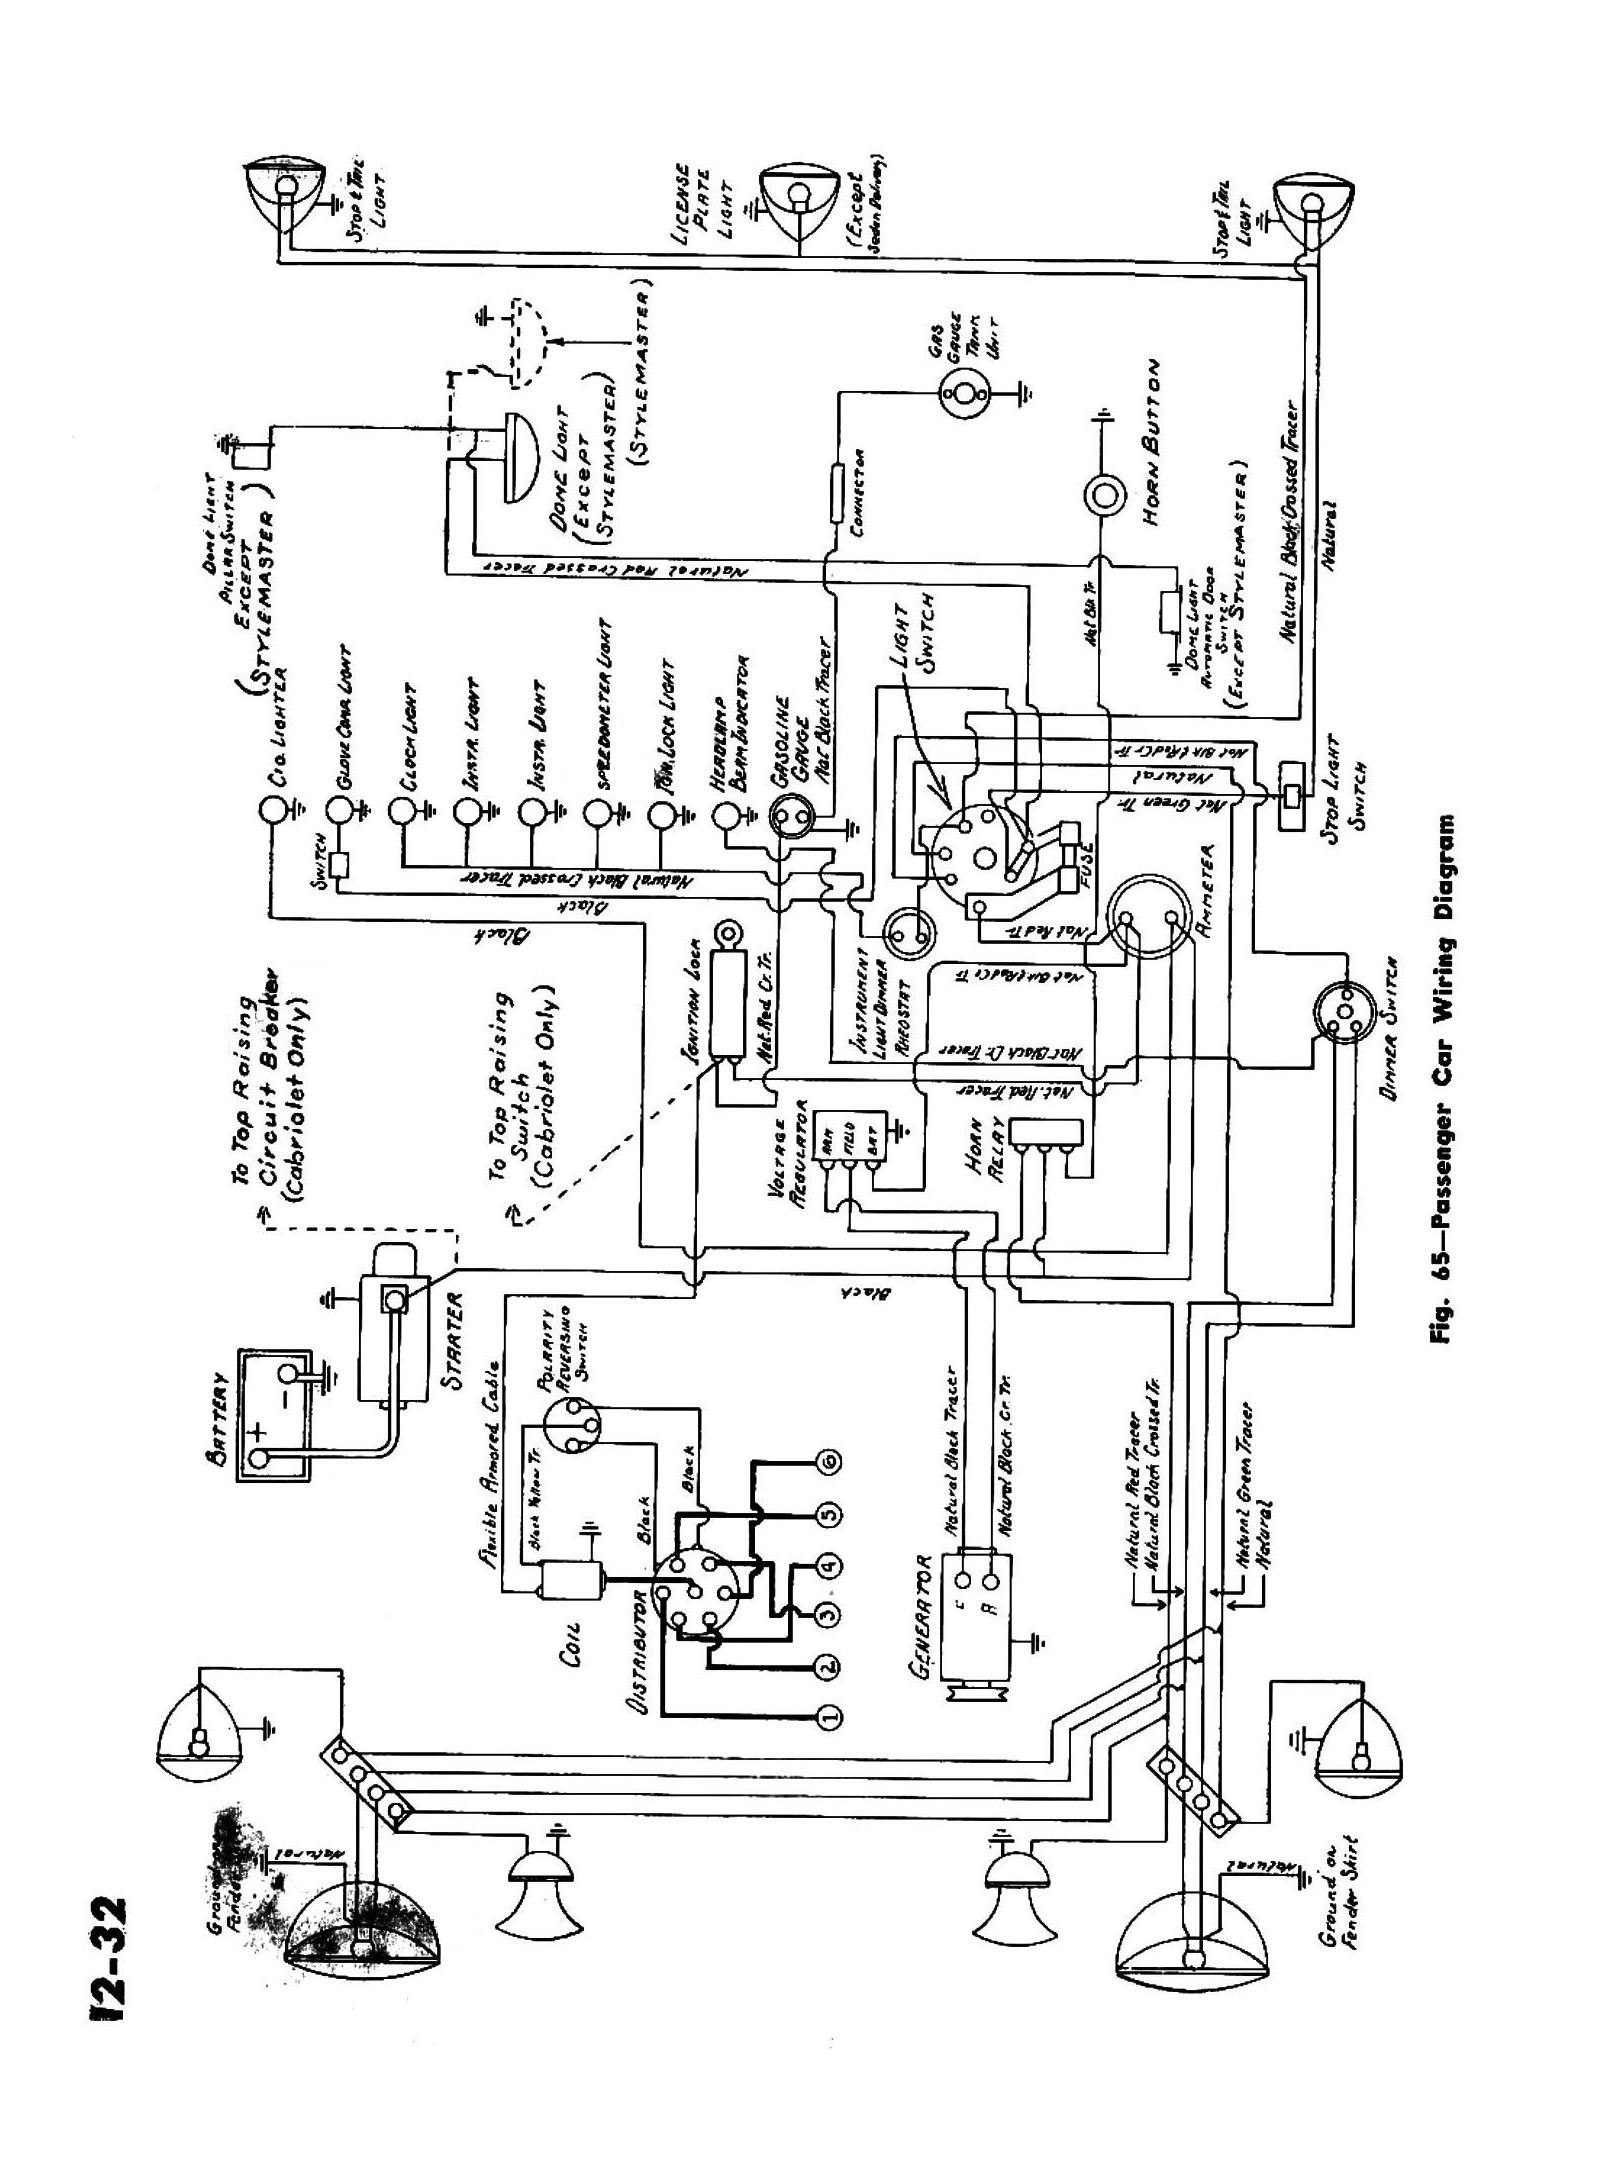 Wiring Diagram For Cars Schematic 2019 Addition Mga Dashboard On Jeep Cj7 Dash Harness Best Chevy Truck Diagrams Free Images Hd Wallpaper Car Horn Alarm